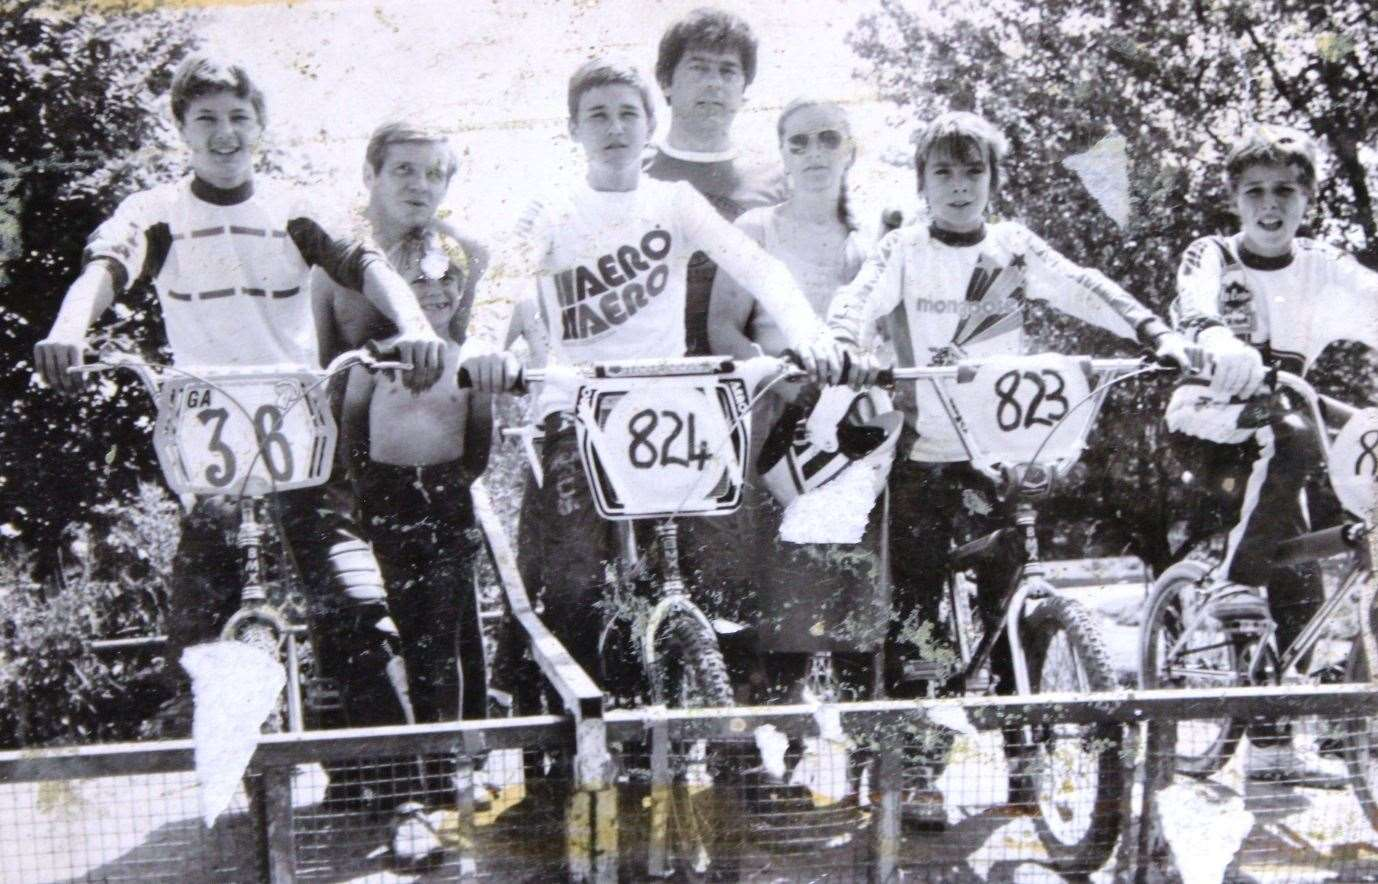 In the 1980s the shop had its own BMX team